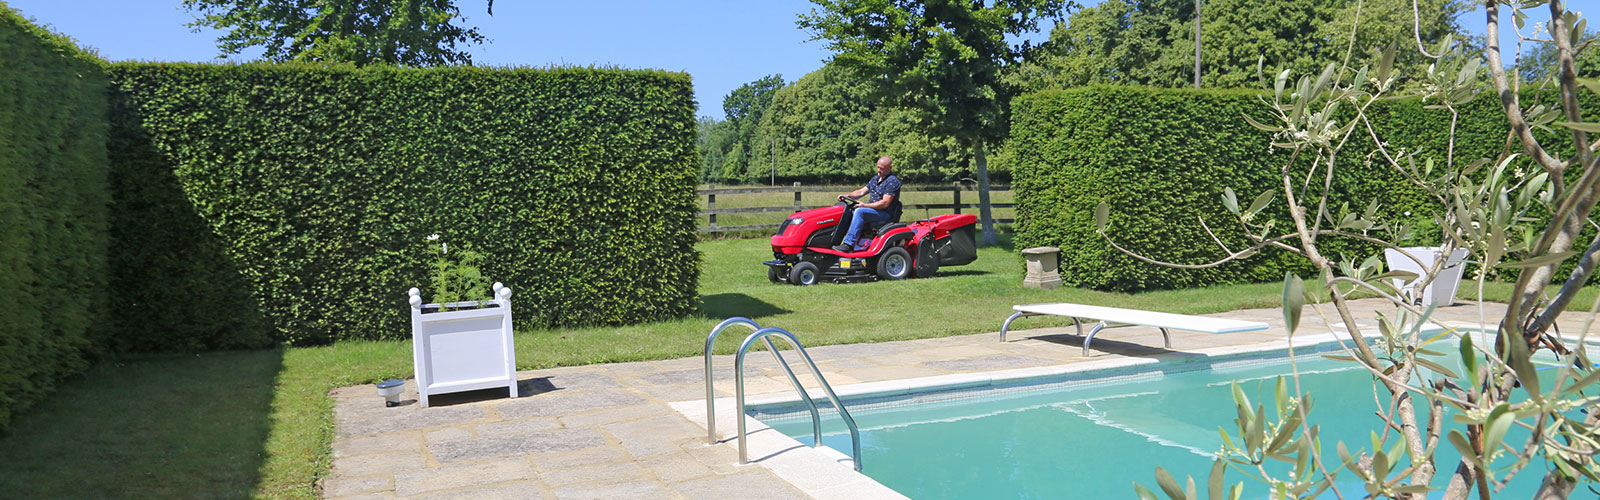 Countax C Series lawn garden tractor ride-on mower cutting and collecting grass by swimming pool